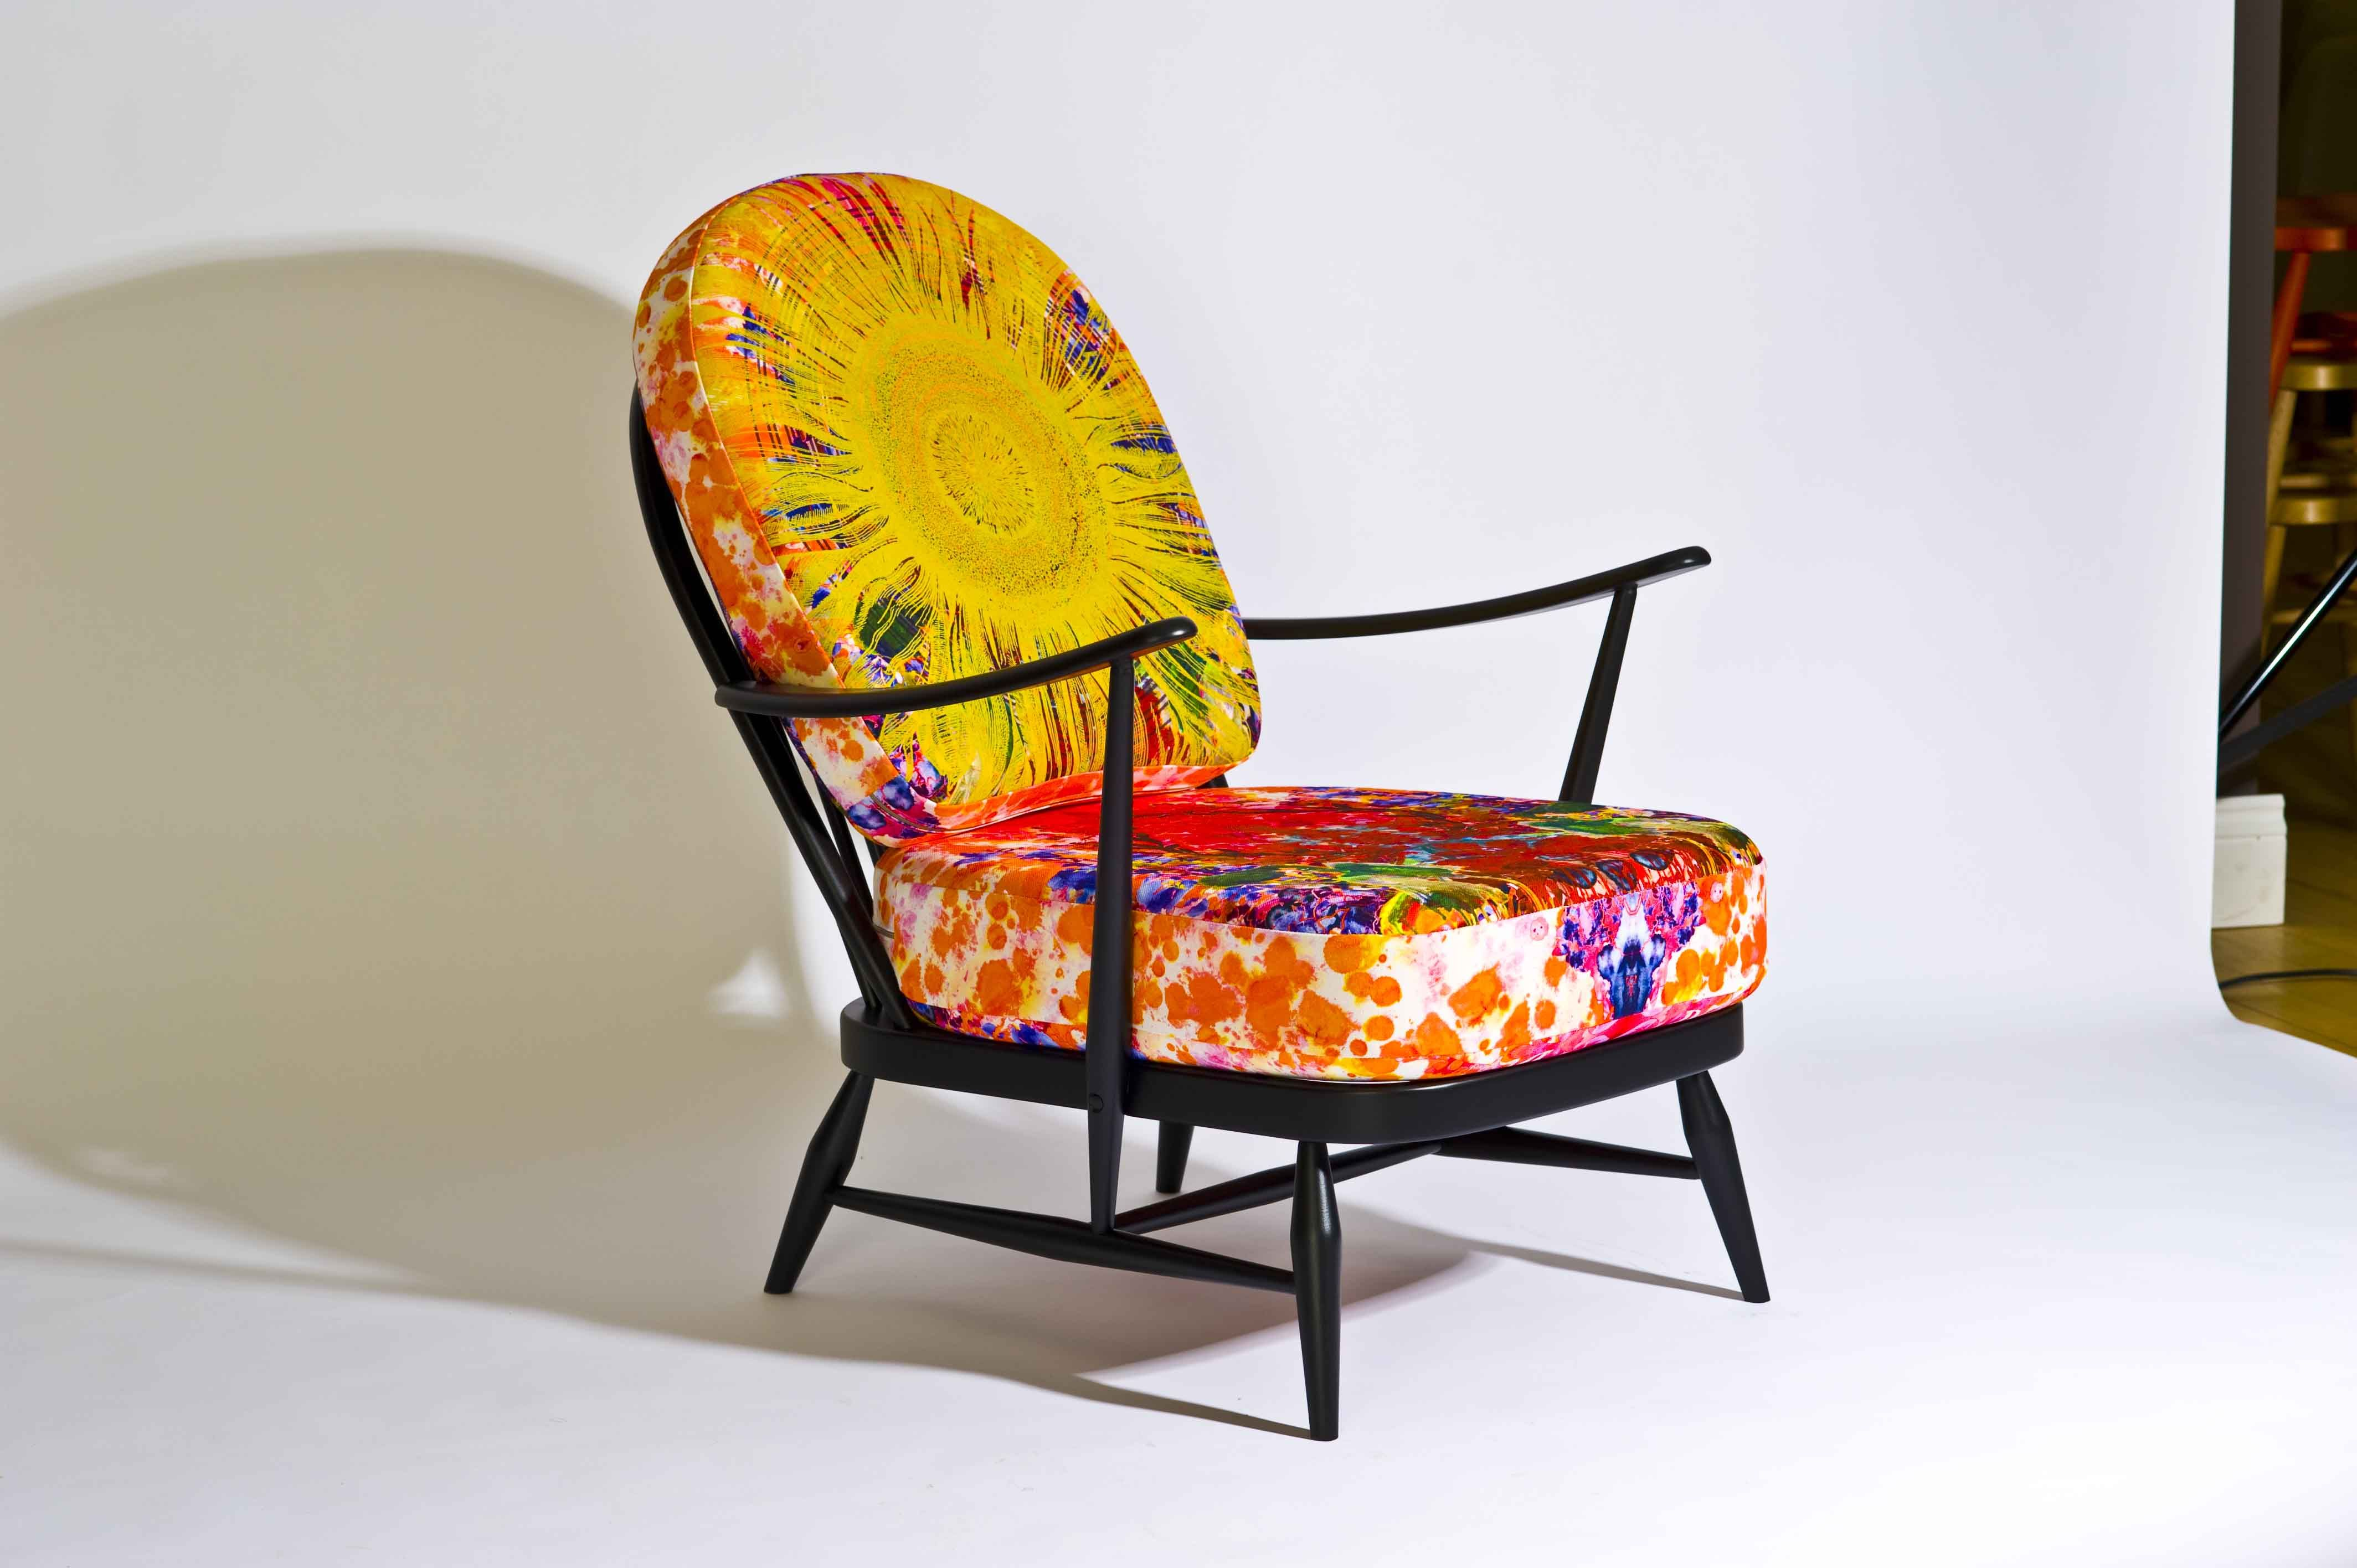 ercol have been asked to take part in Heliotropique at Paris trade